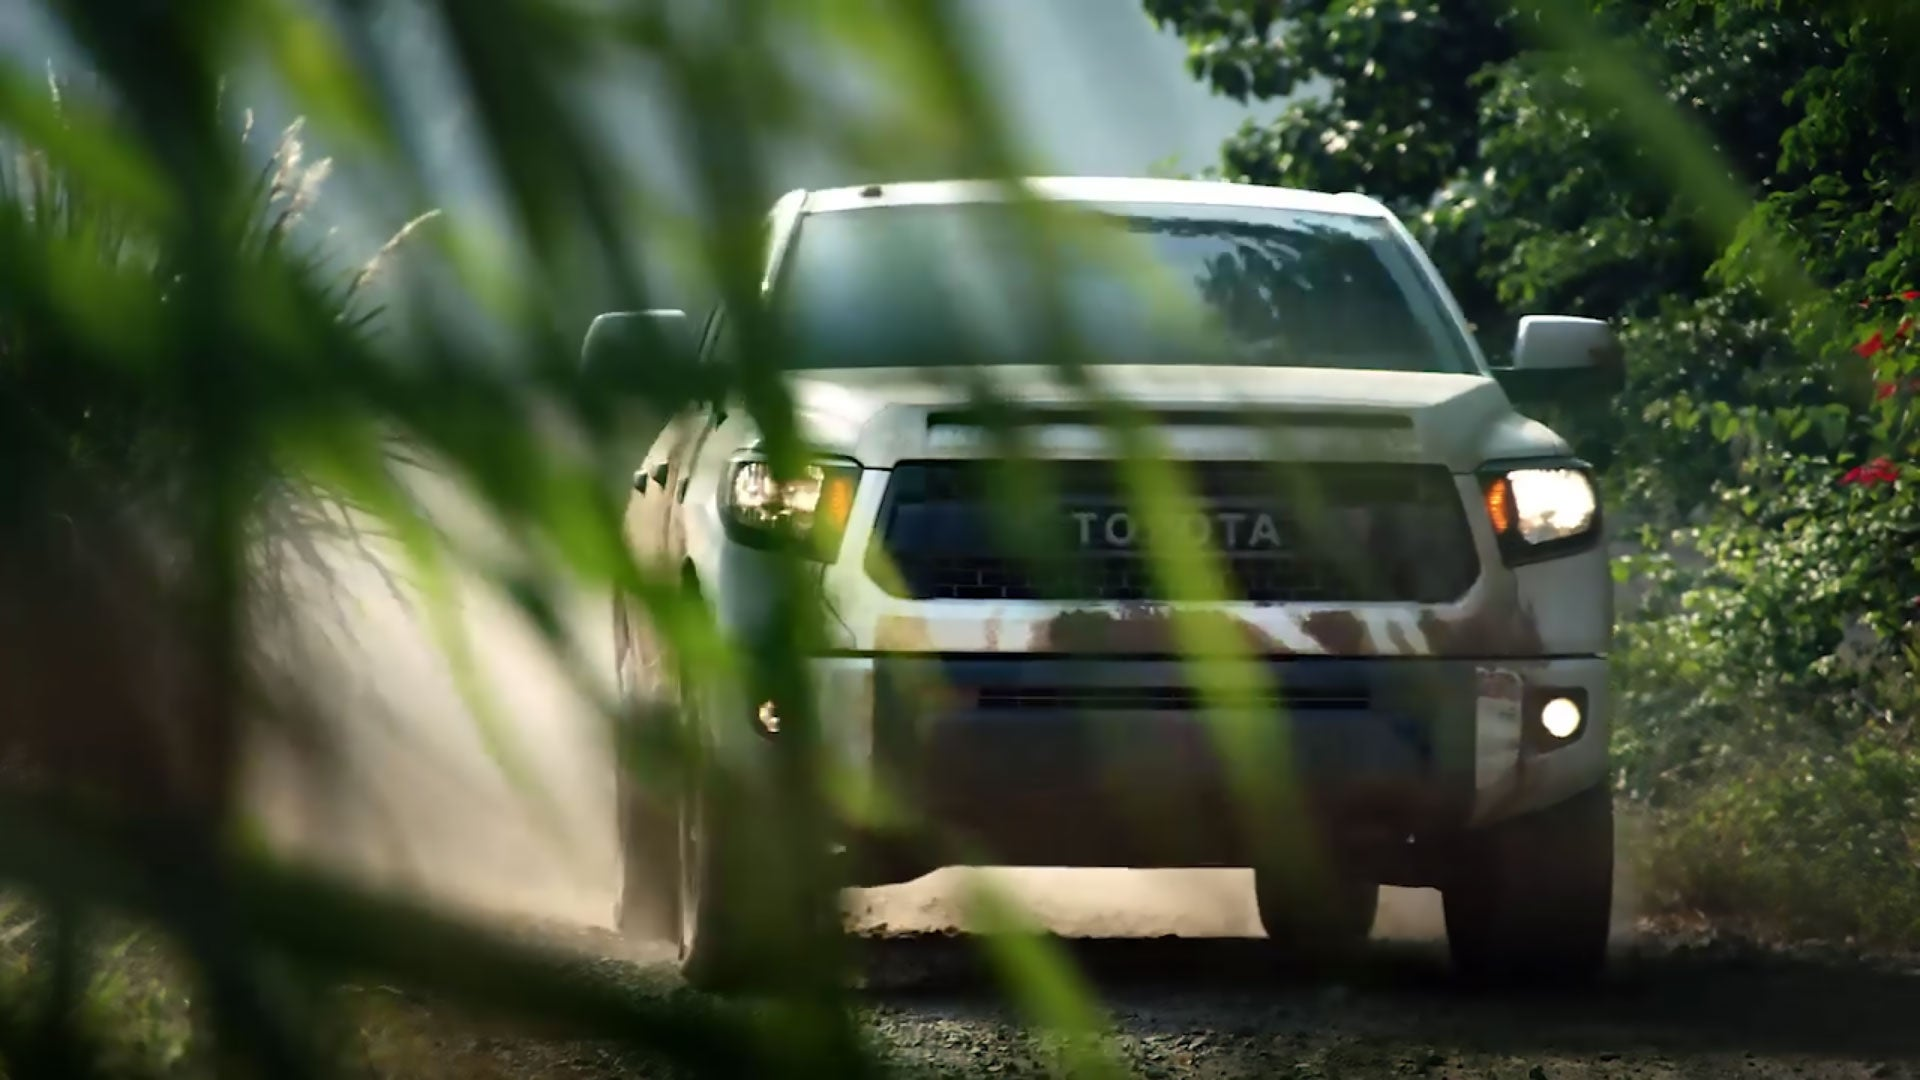 Toyota Dealer in Litchfield, CT | Used Cars Litchfield